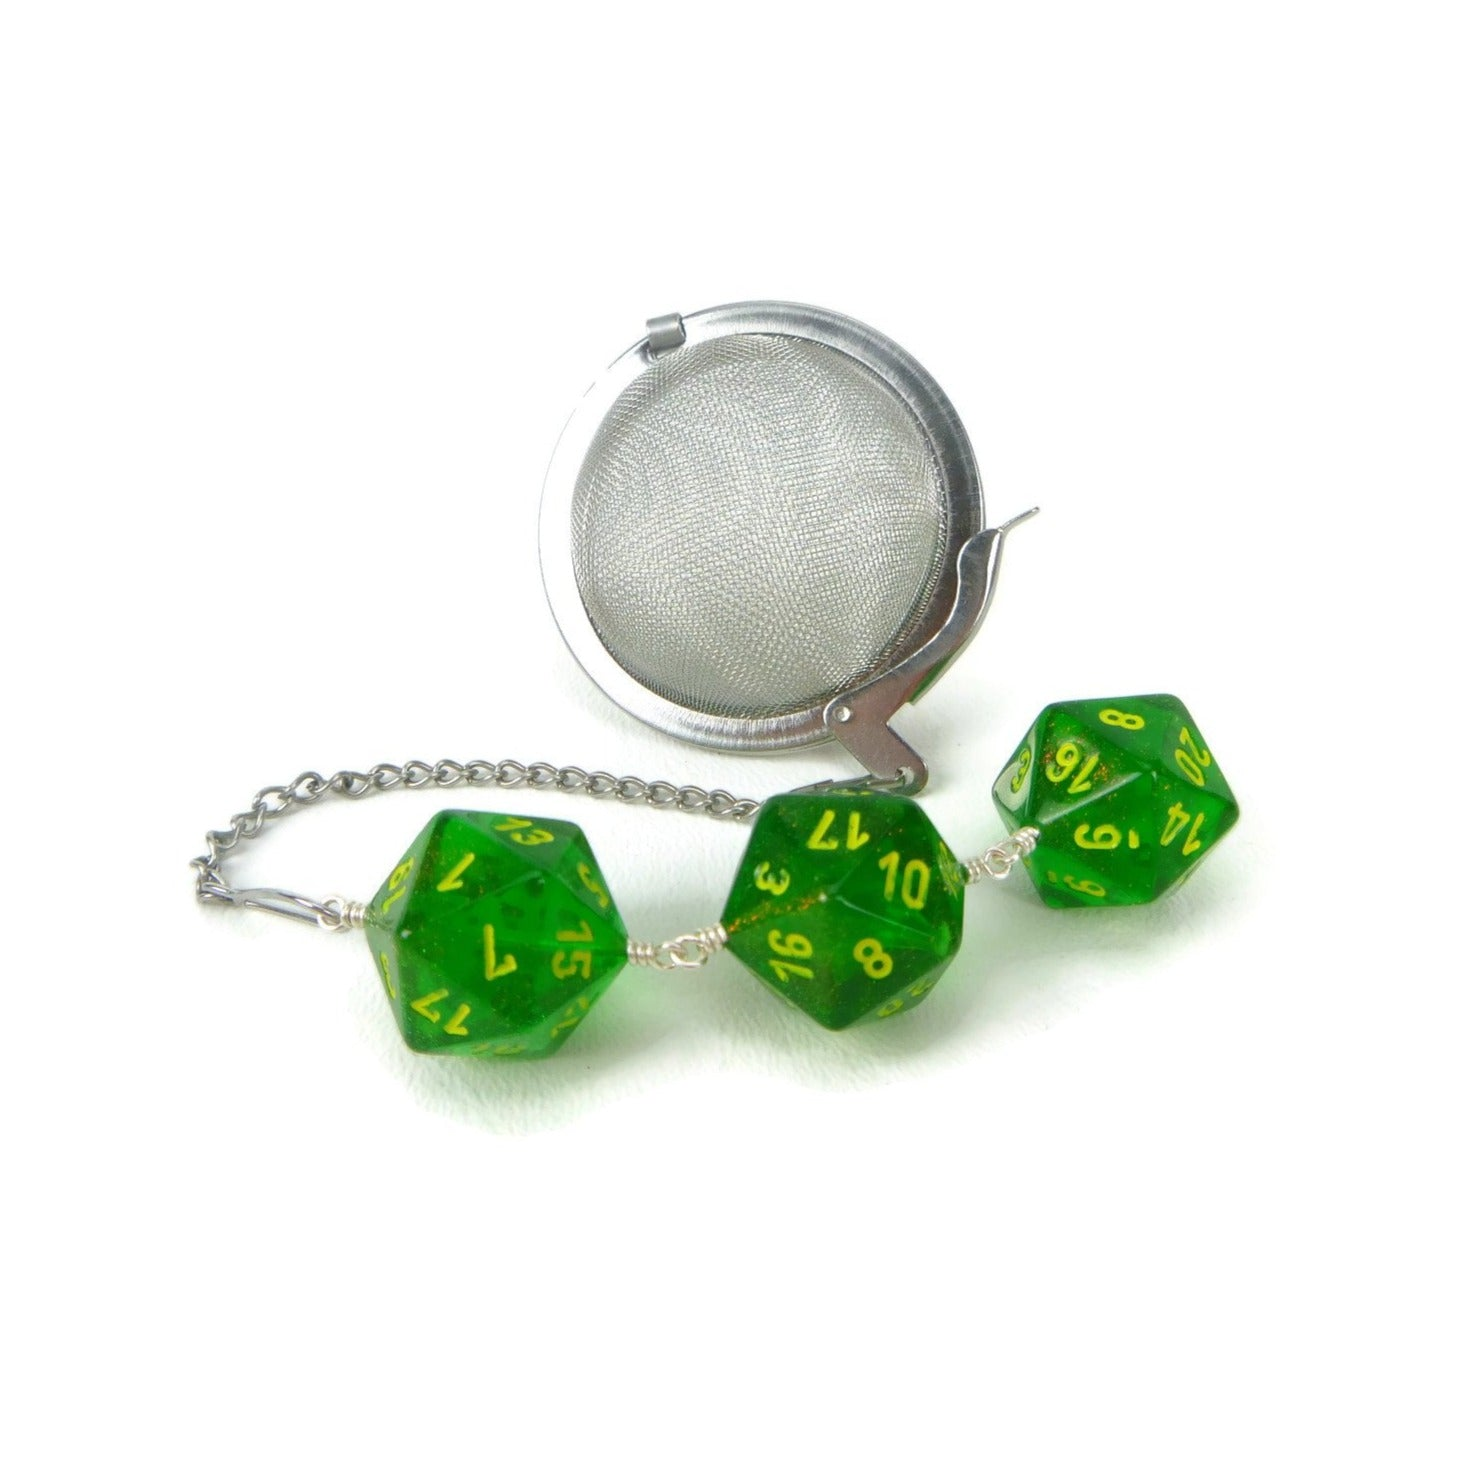 Tea Infuser with green borealis dice trio